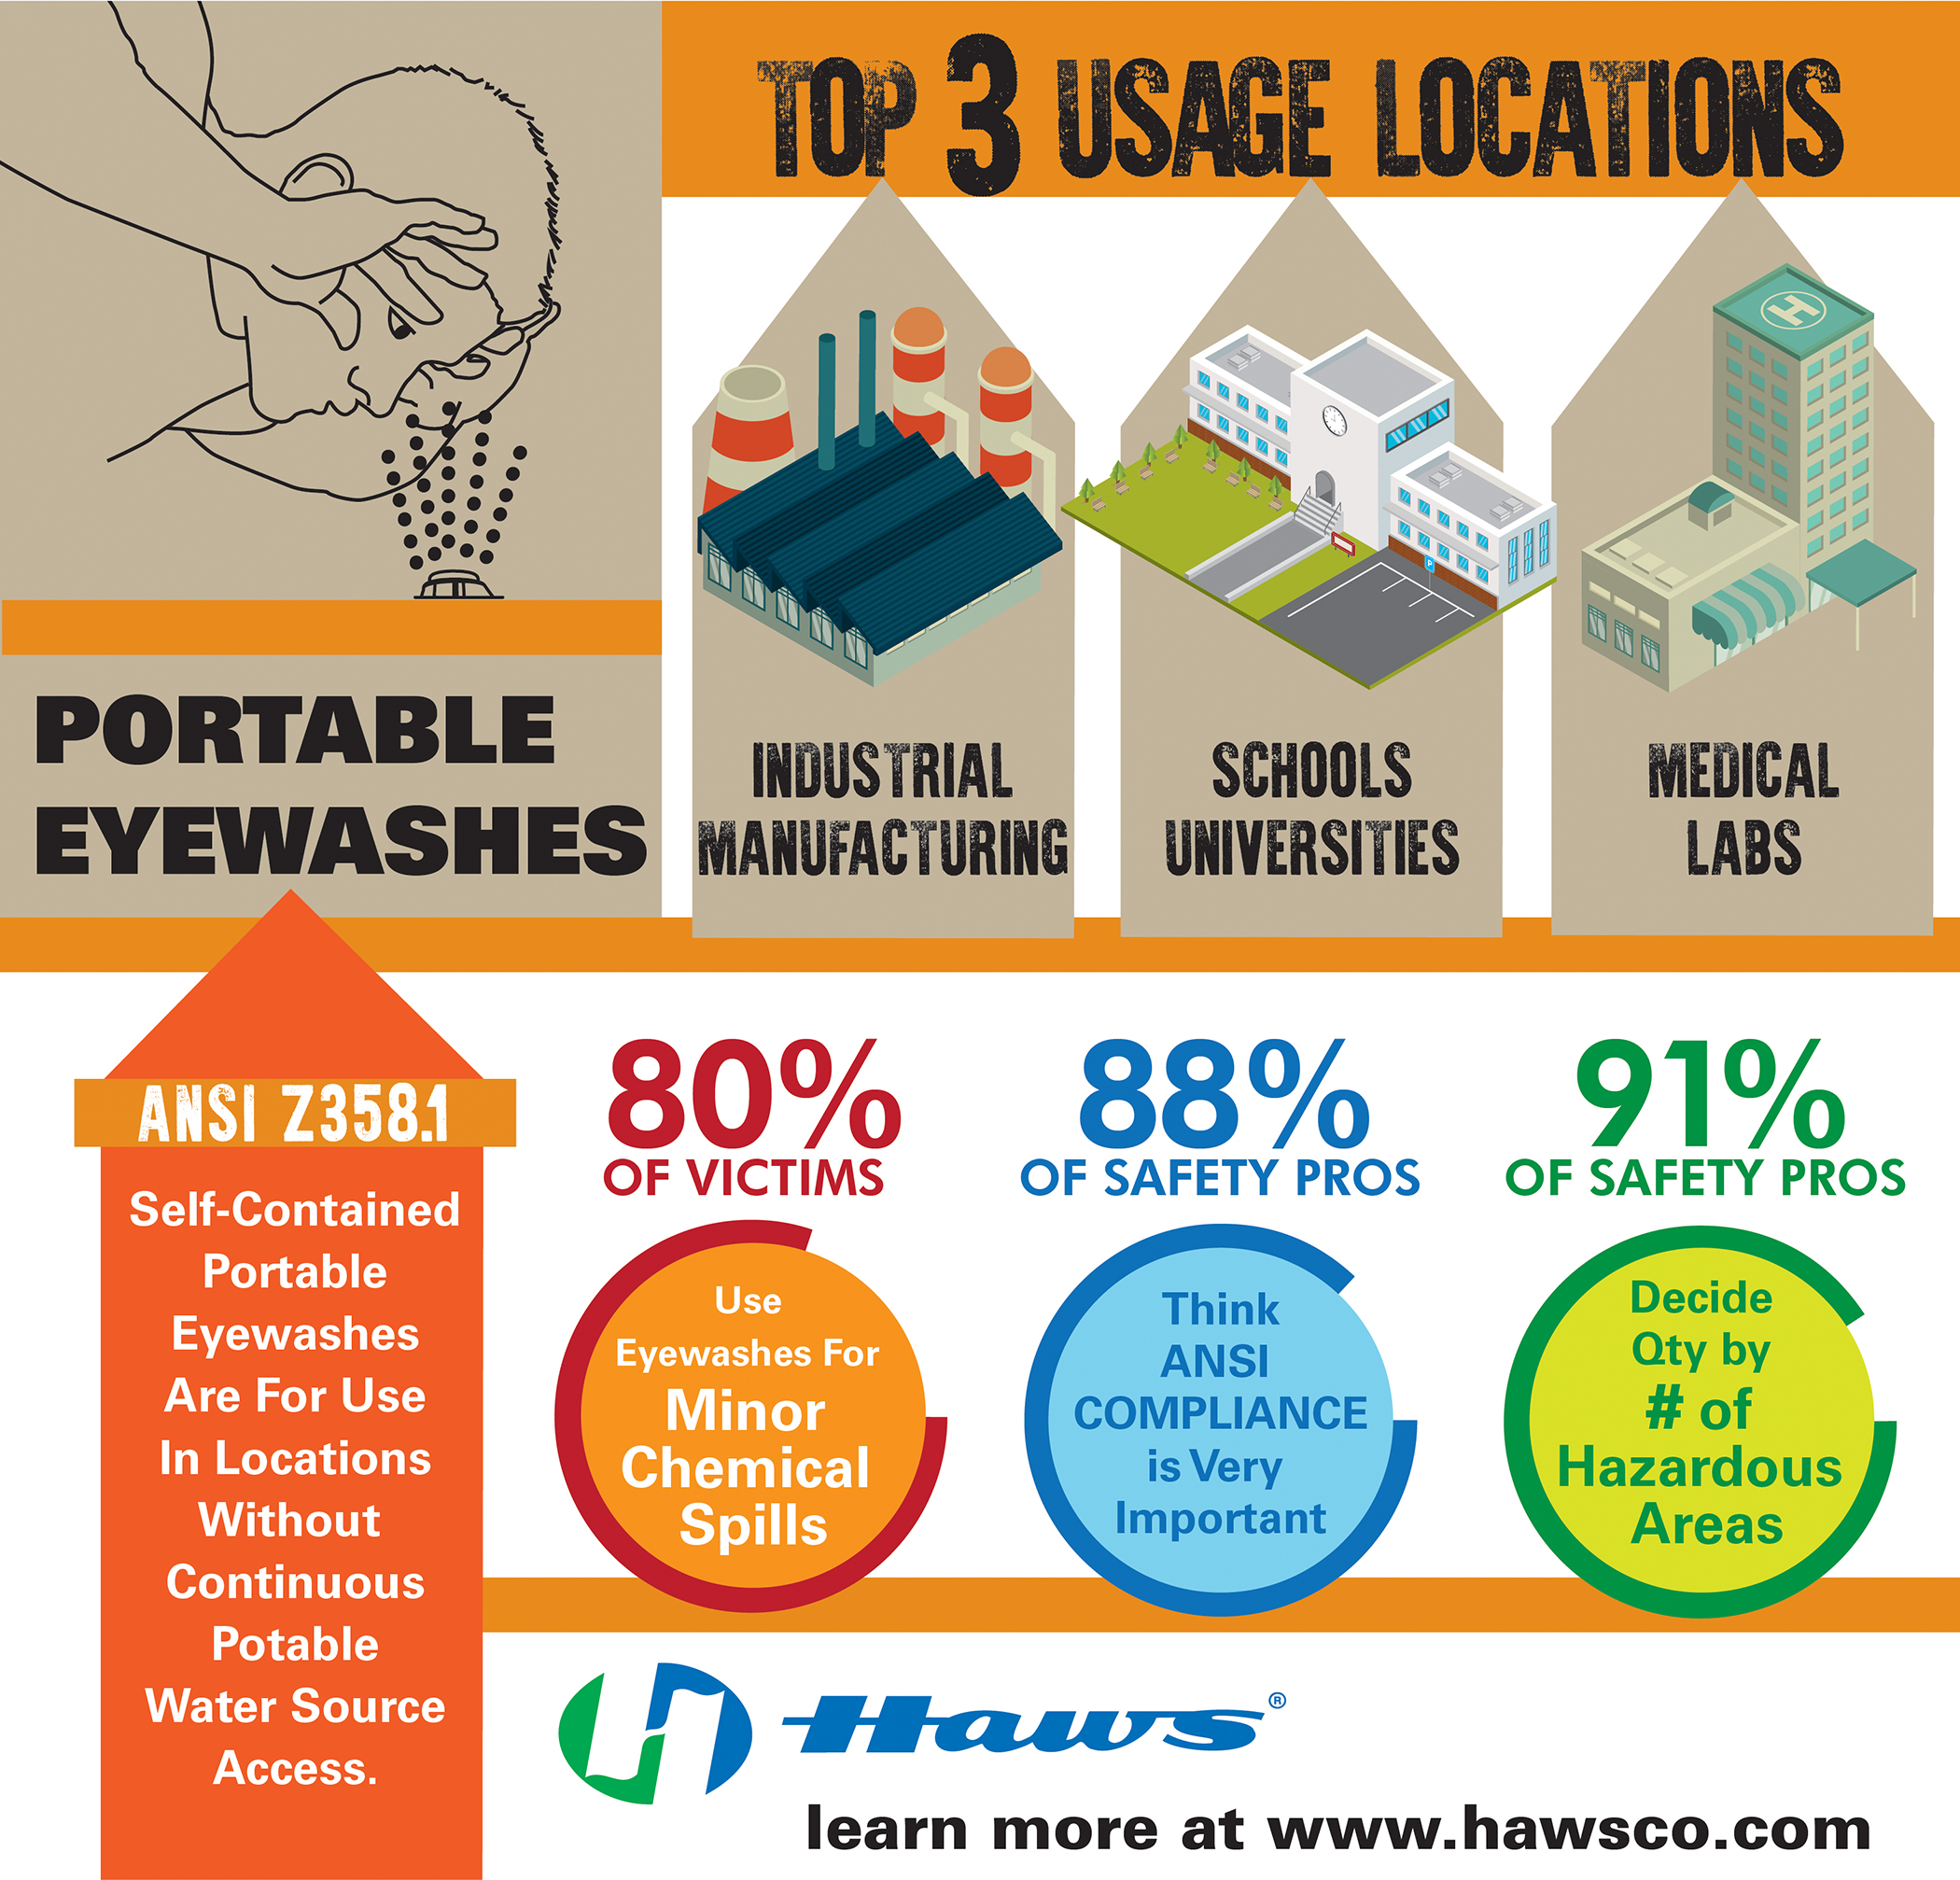 Infographic Top 3 Usage Locations Of Portable Eyewashes